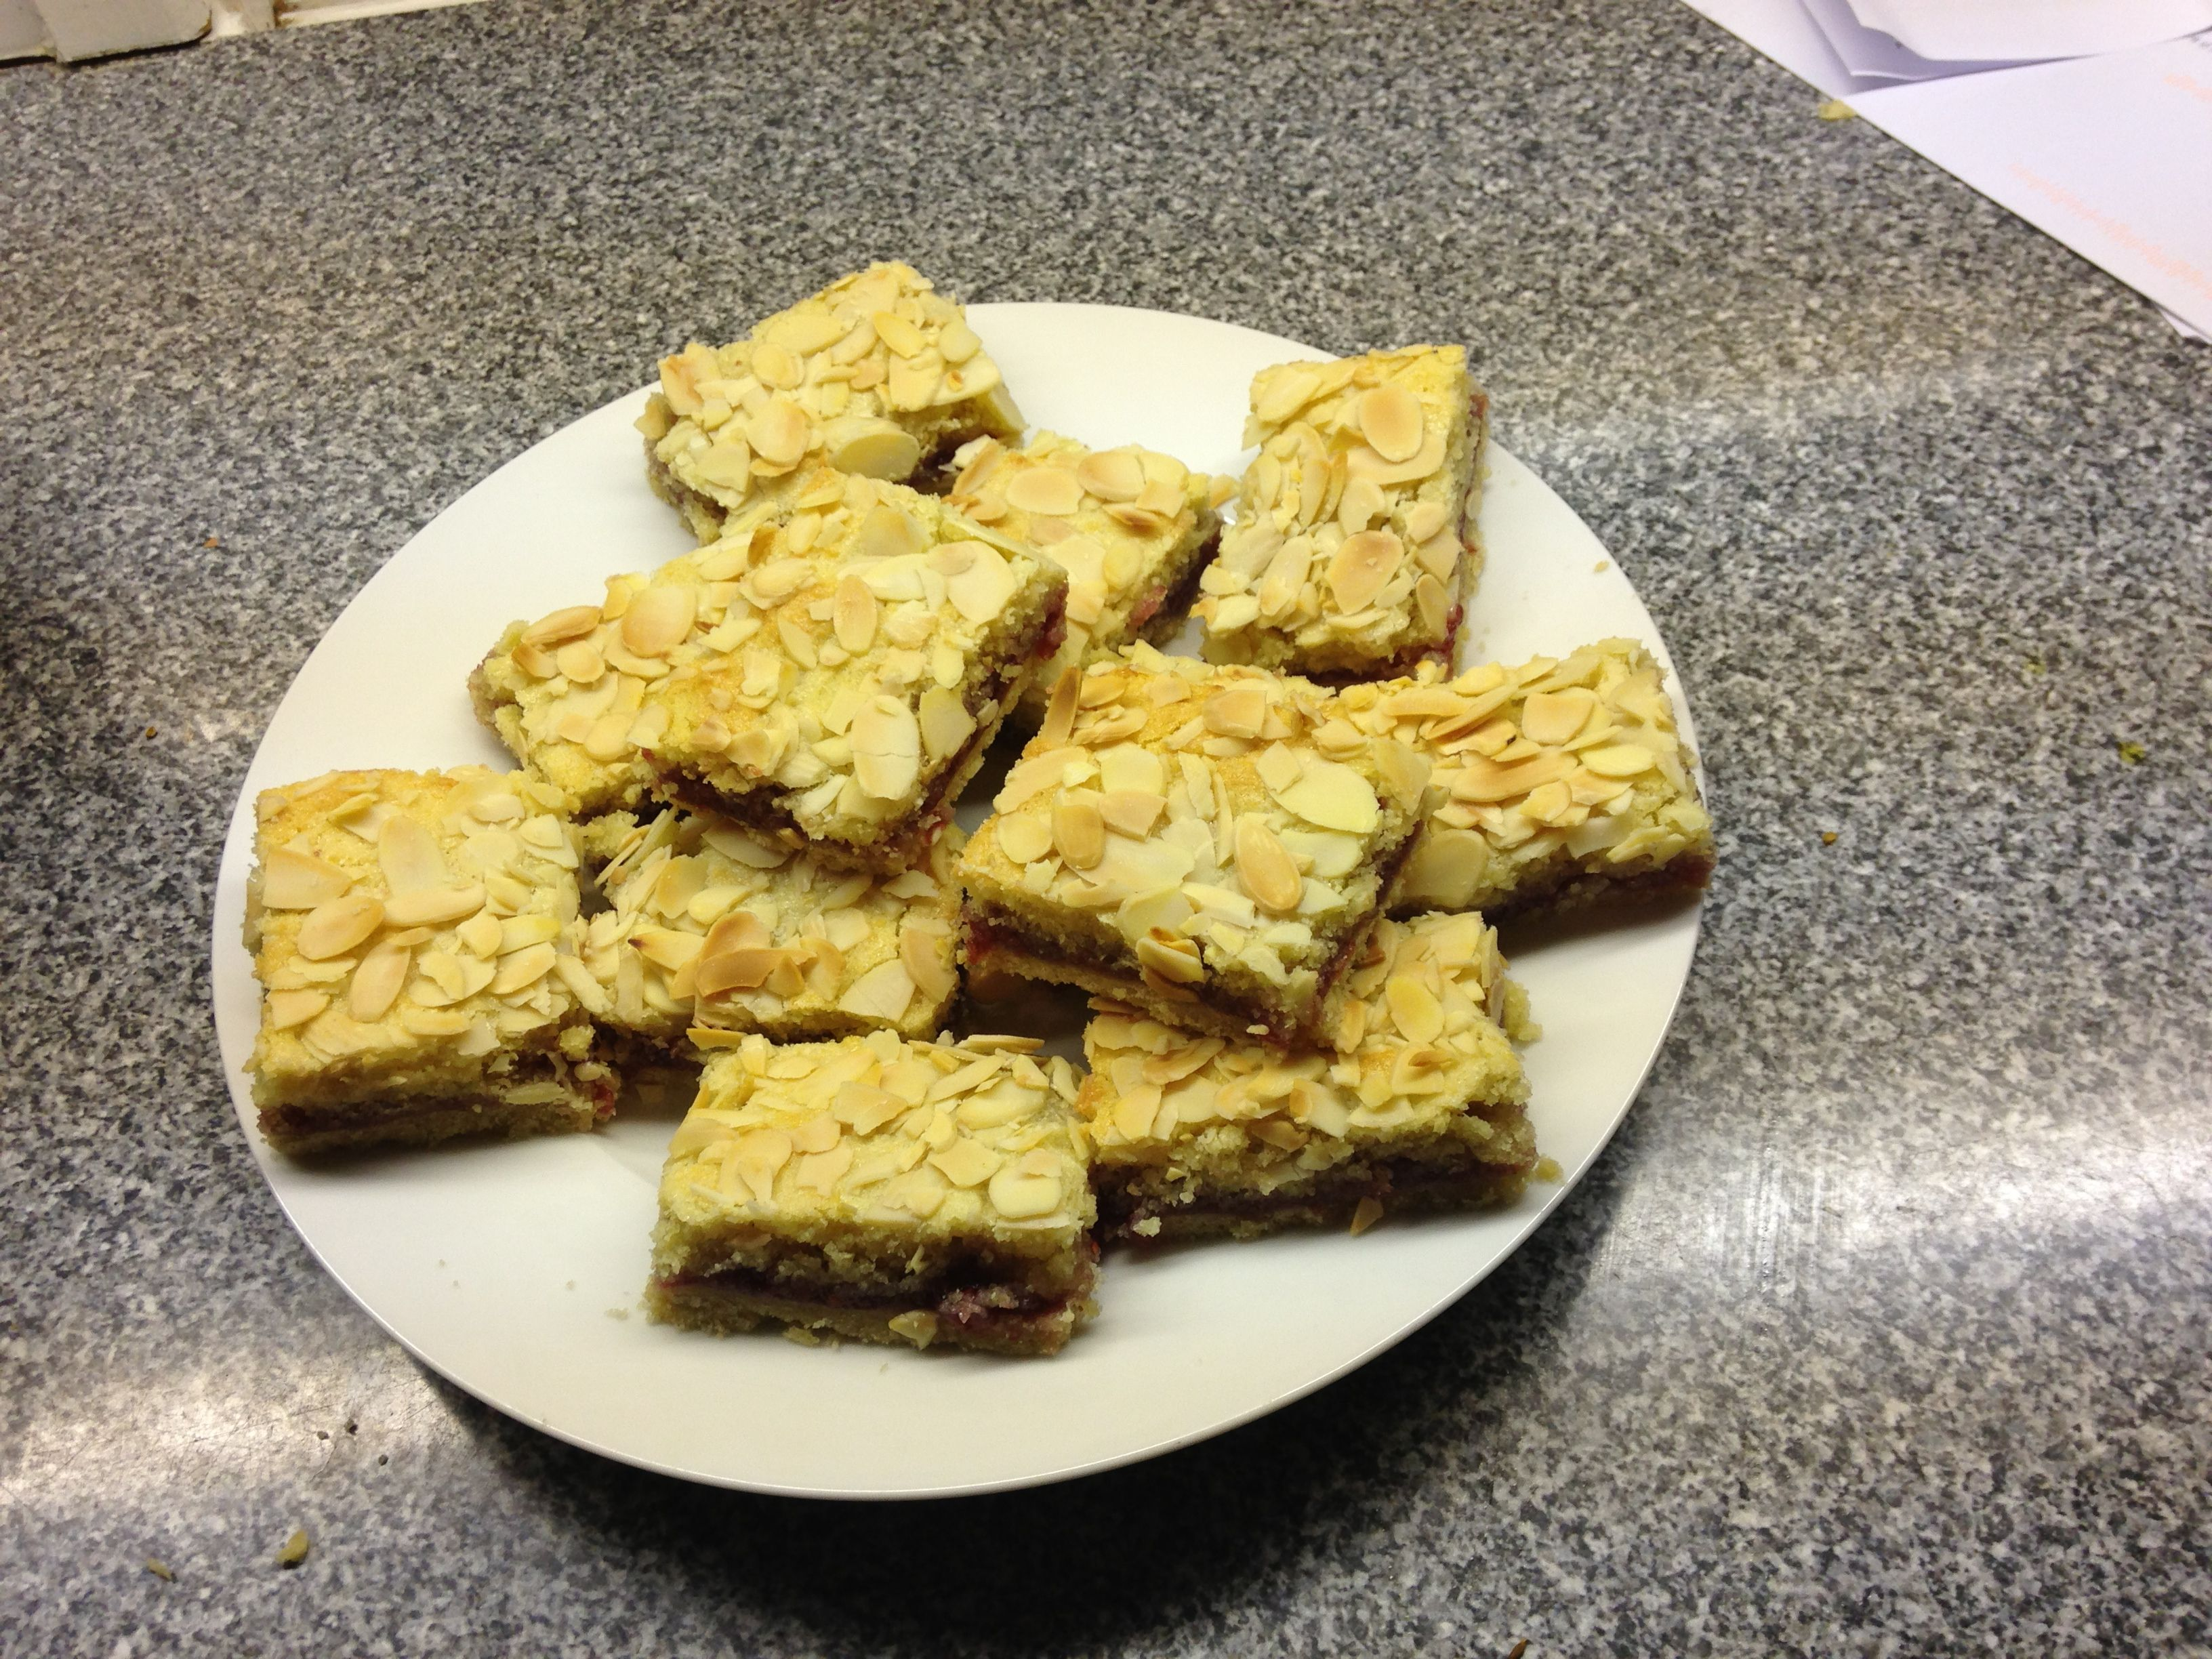 Bakewell slices made with my 4 year old. Recipe from Rachel Allen's book Bake though we added more raspberry jam. Will try with apricot jam next time.